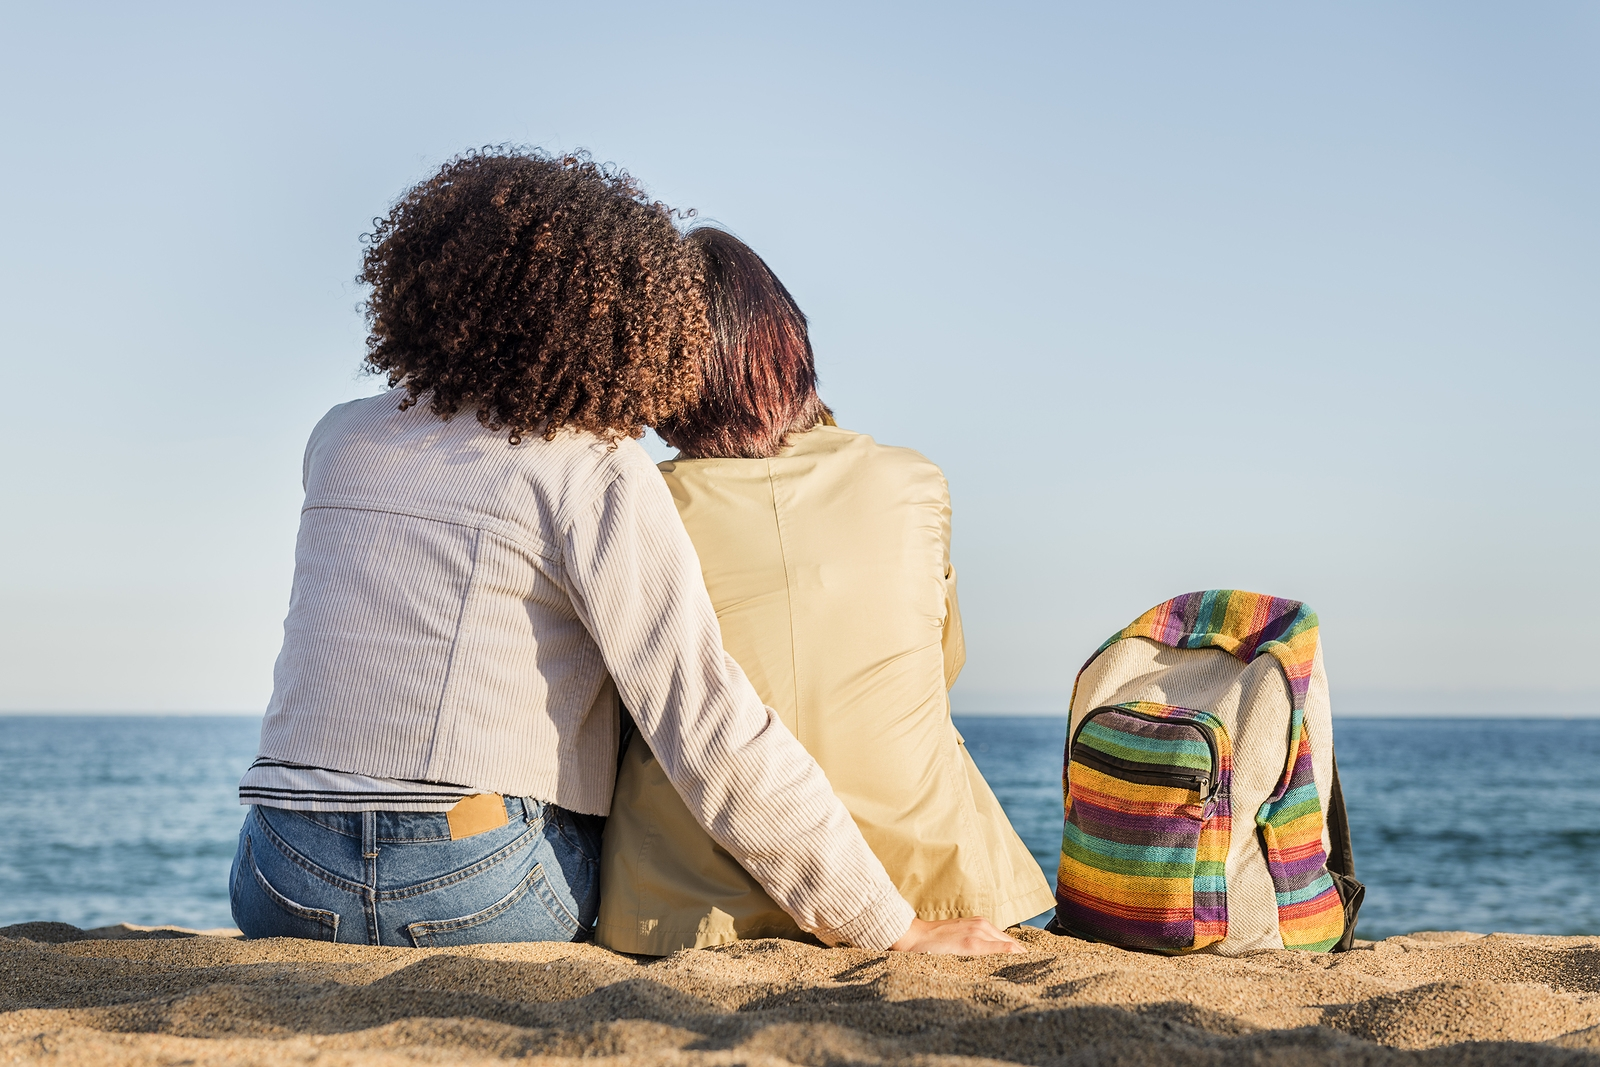 A lesbian couple sit and embrace as they look out over the sea. They have felt understood and safe at lgbt affirmative therapy in west bloomfield, mi. Therapyology offers lgbtq therapy in west bloomfield, mi. lgbt affirmative therapy in west bloomfield, mi, and more. Contact us today to get in touch with a lgbt ally in west bloomfield, mi.